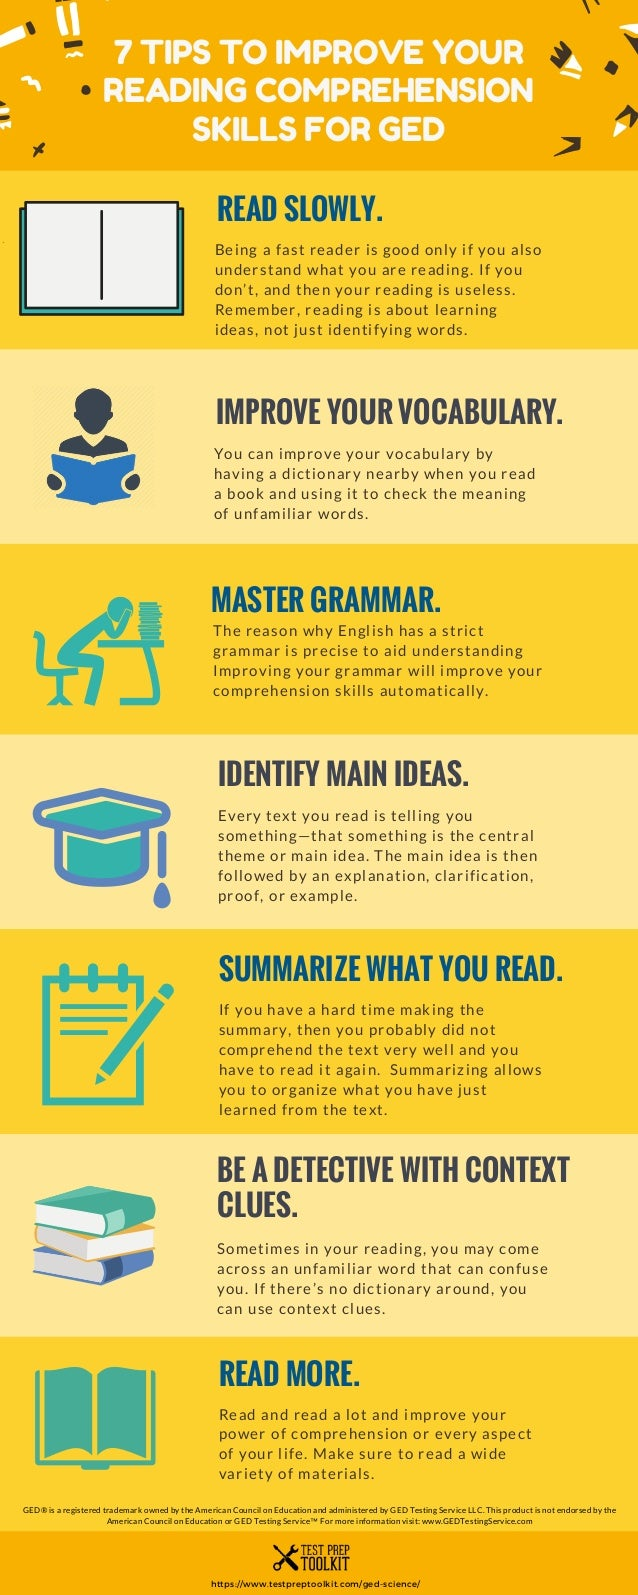 - 7 Tips To Improve Your Reading Comprehension Skills For GED